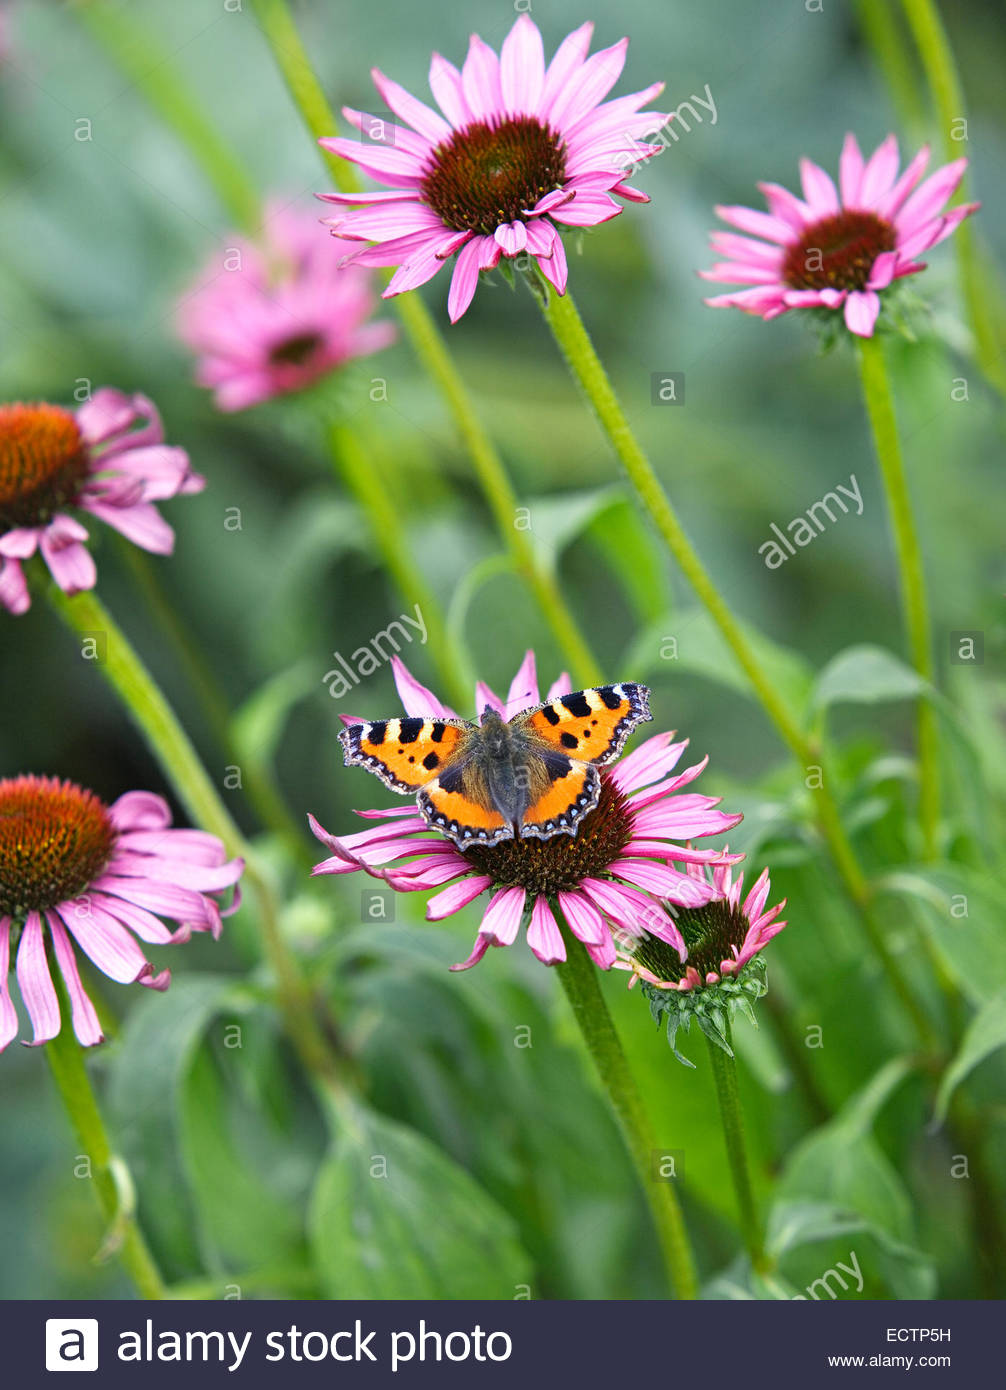 Red Admiral butterfly on Echinacea purpurea flower - Stock Image